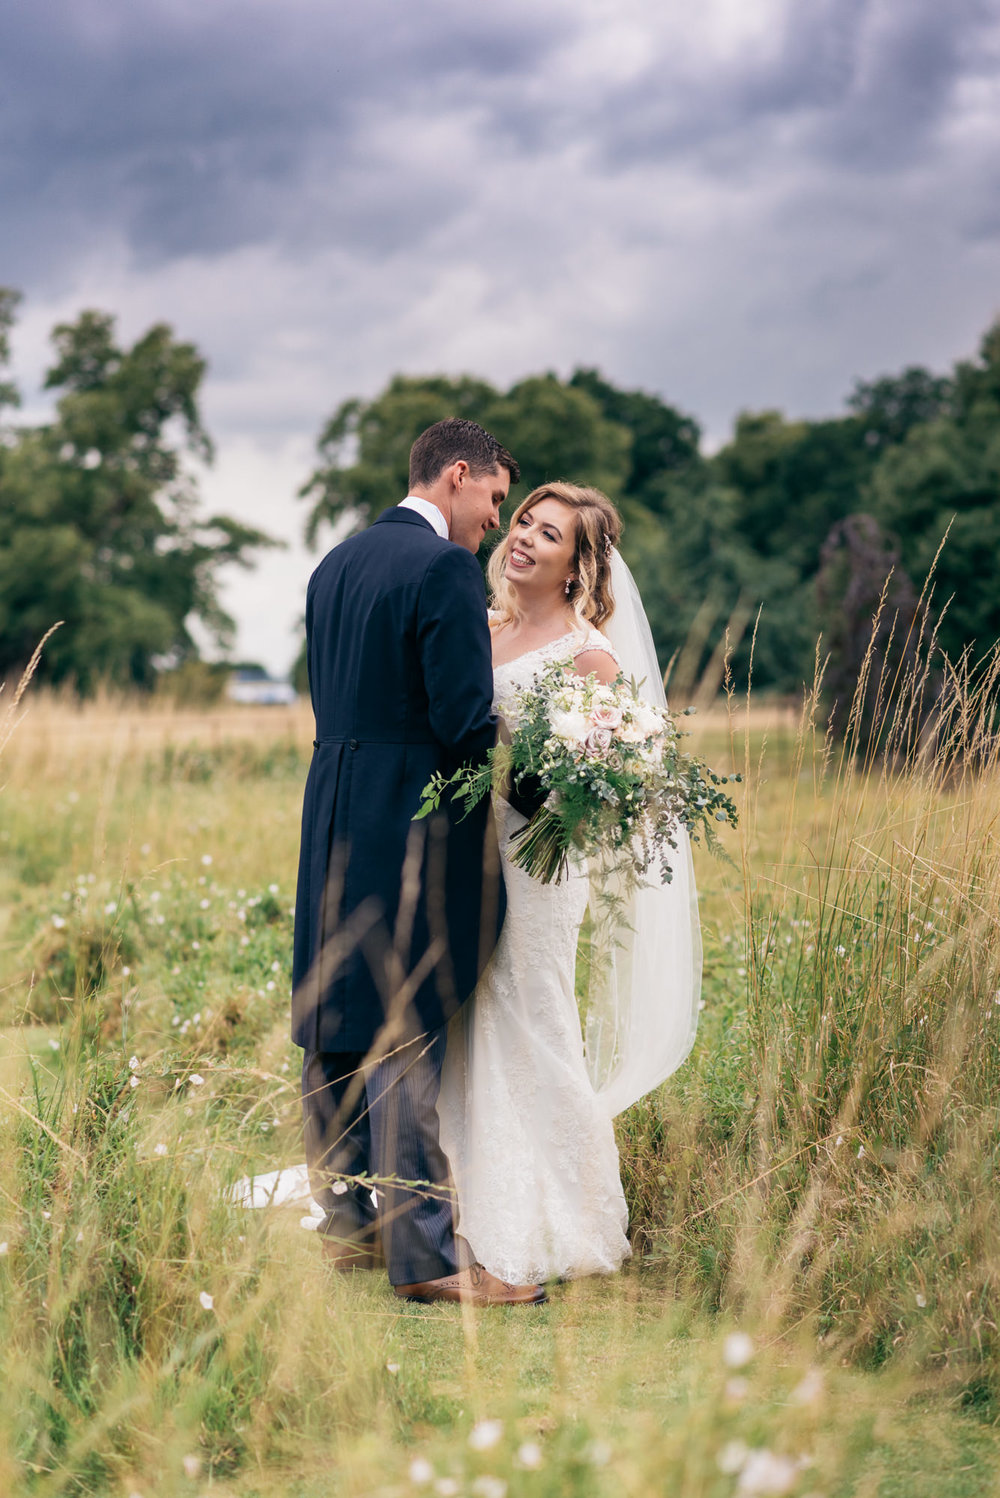 Portrait of the bride and groom at Narborough Hall Gardens in Norfolk